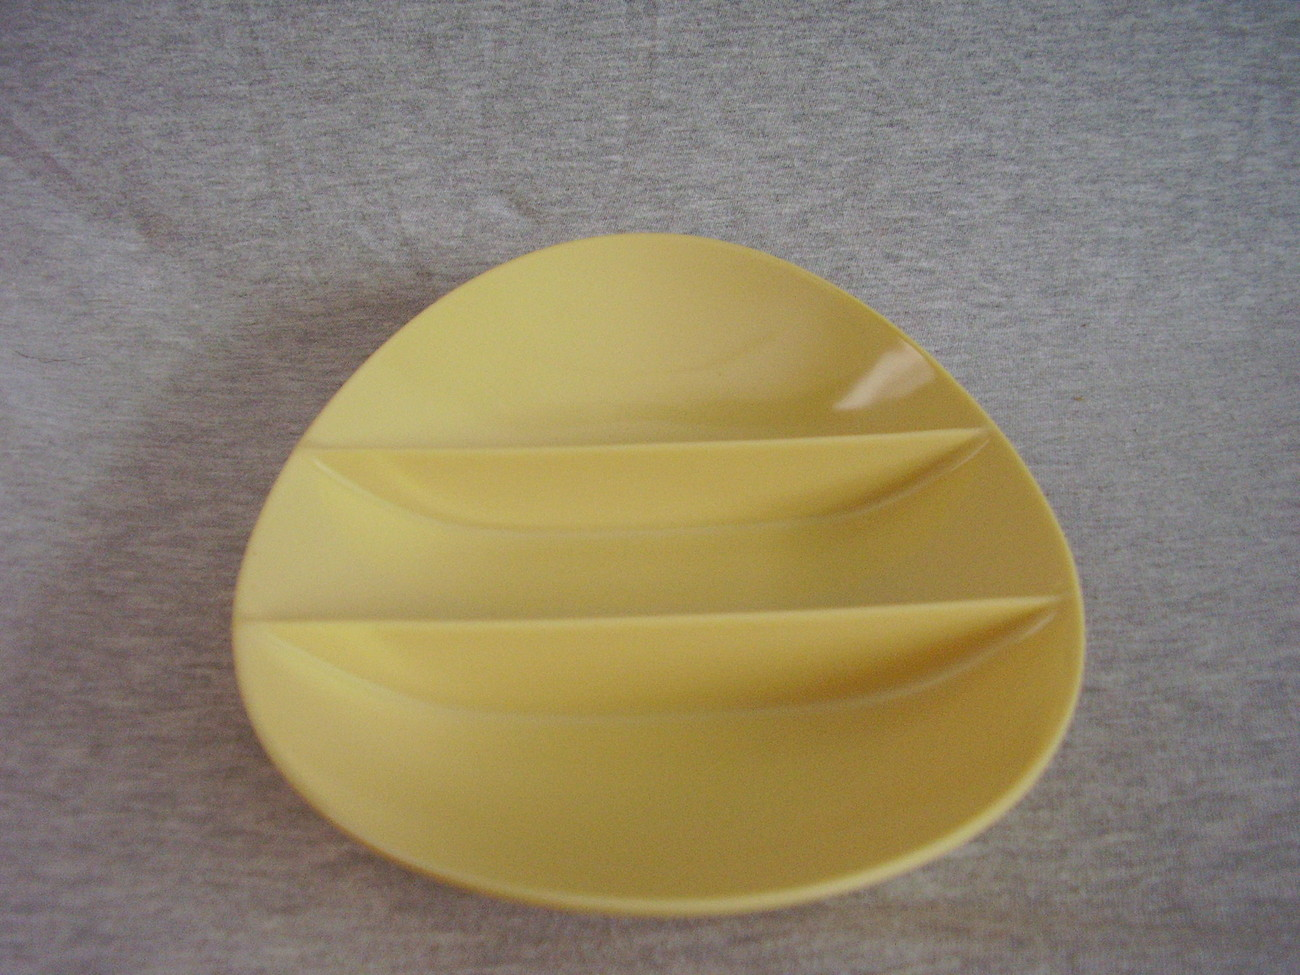 Fostoria Melmac 3 Section Divided Serving Dish Bowl